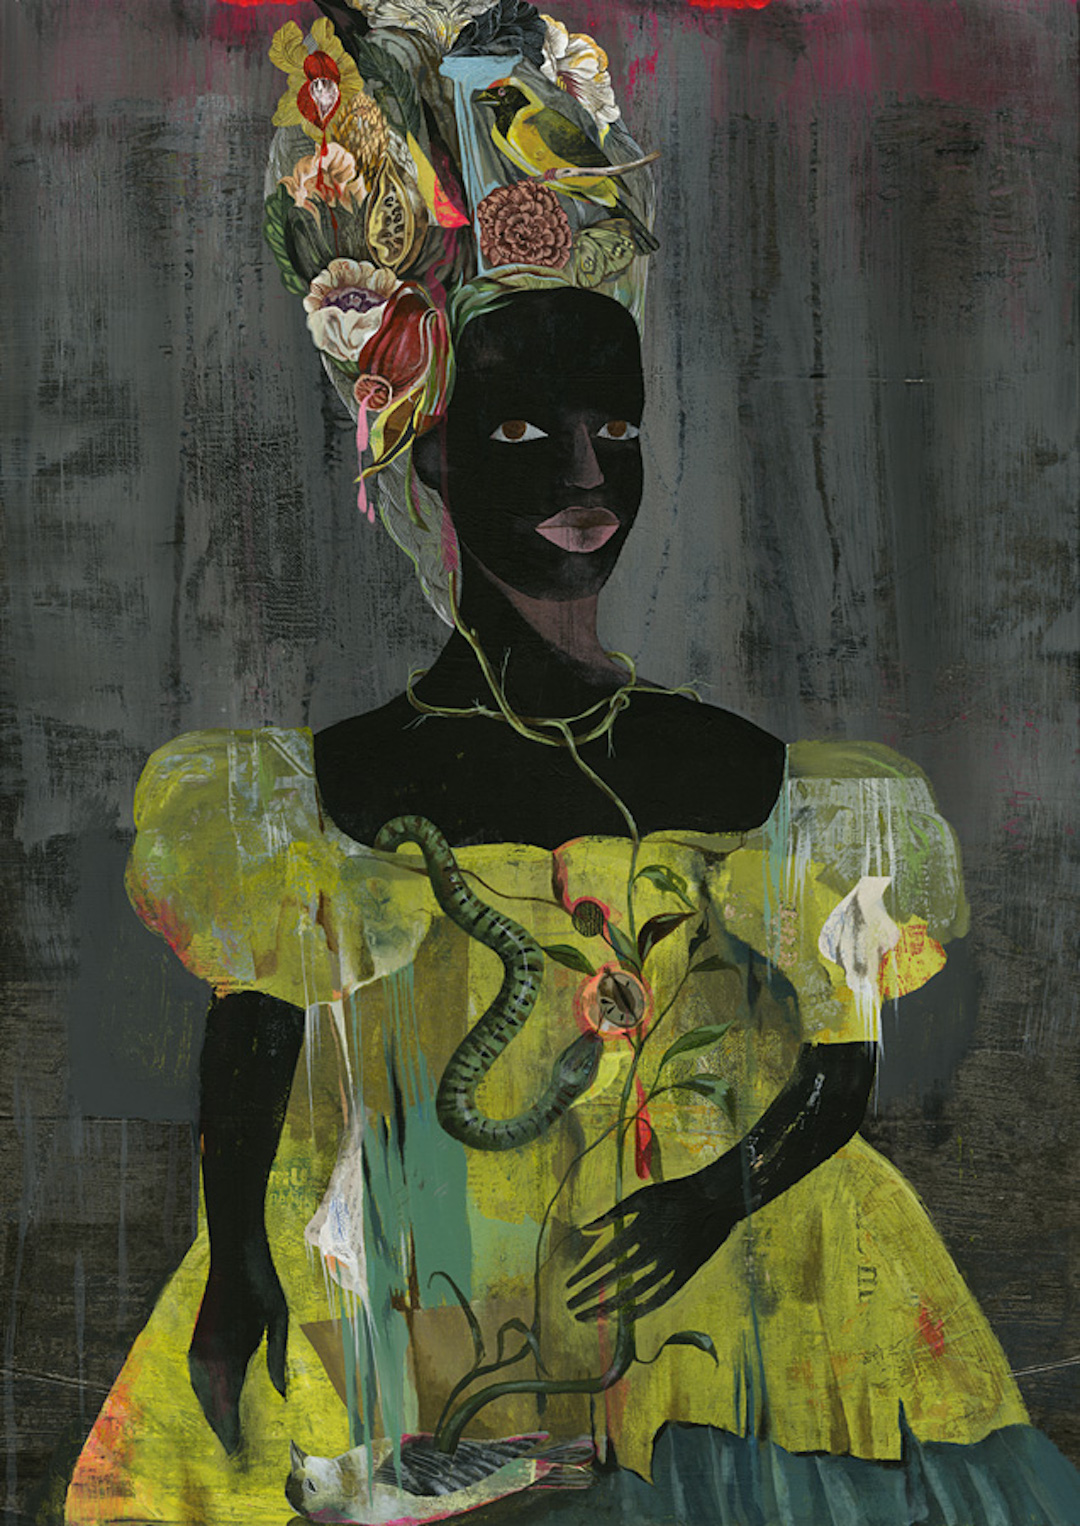 Black Antoinette by Olaf Hajek